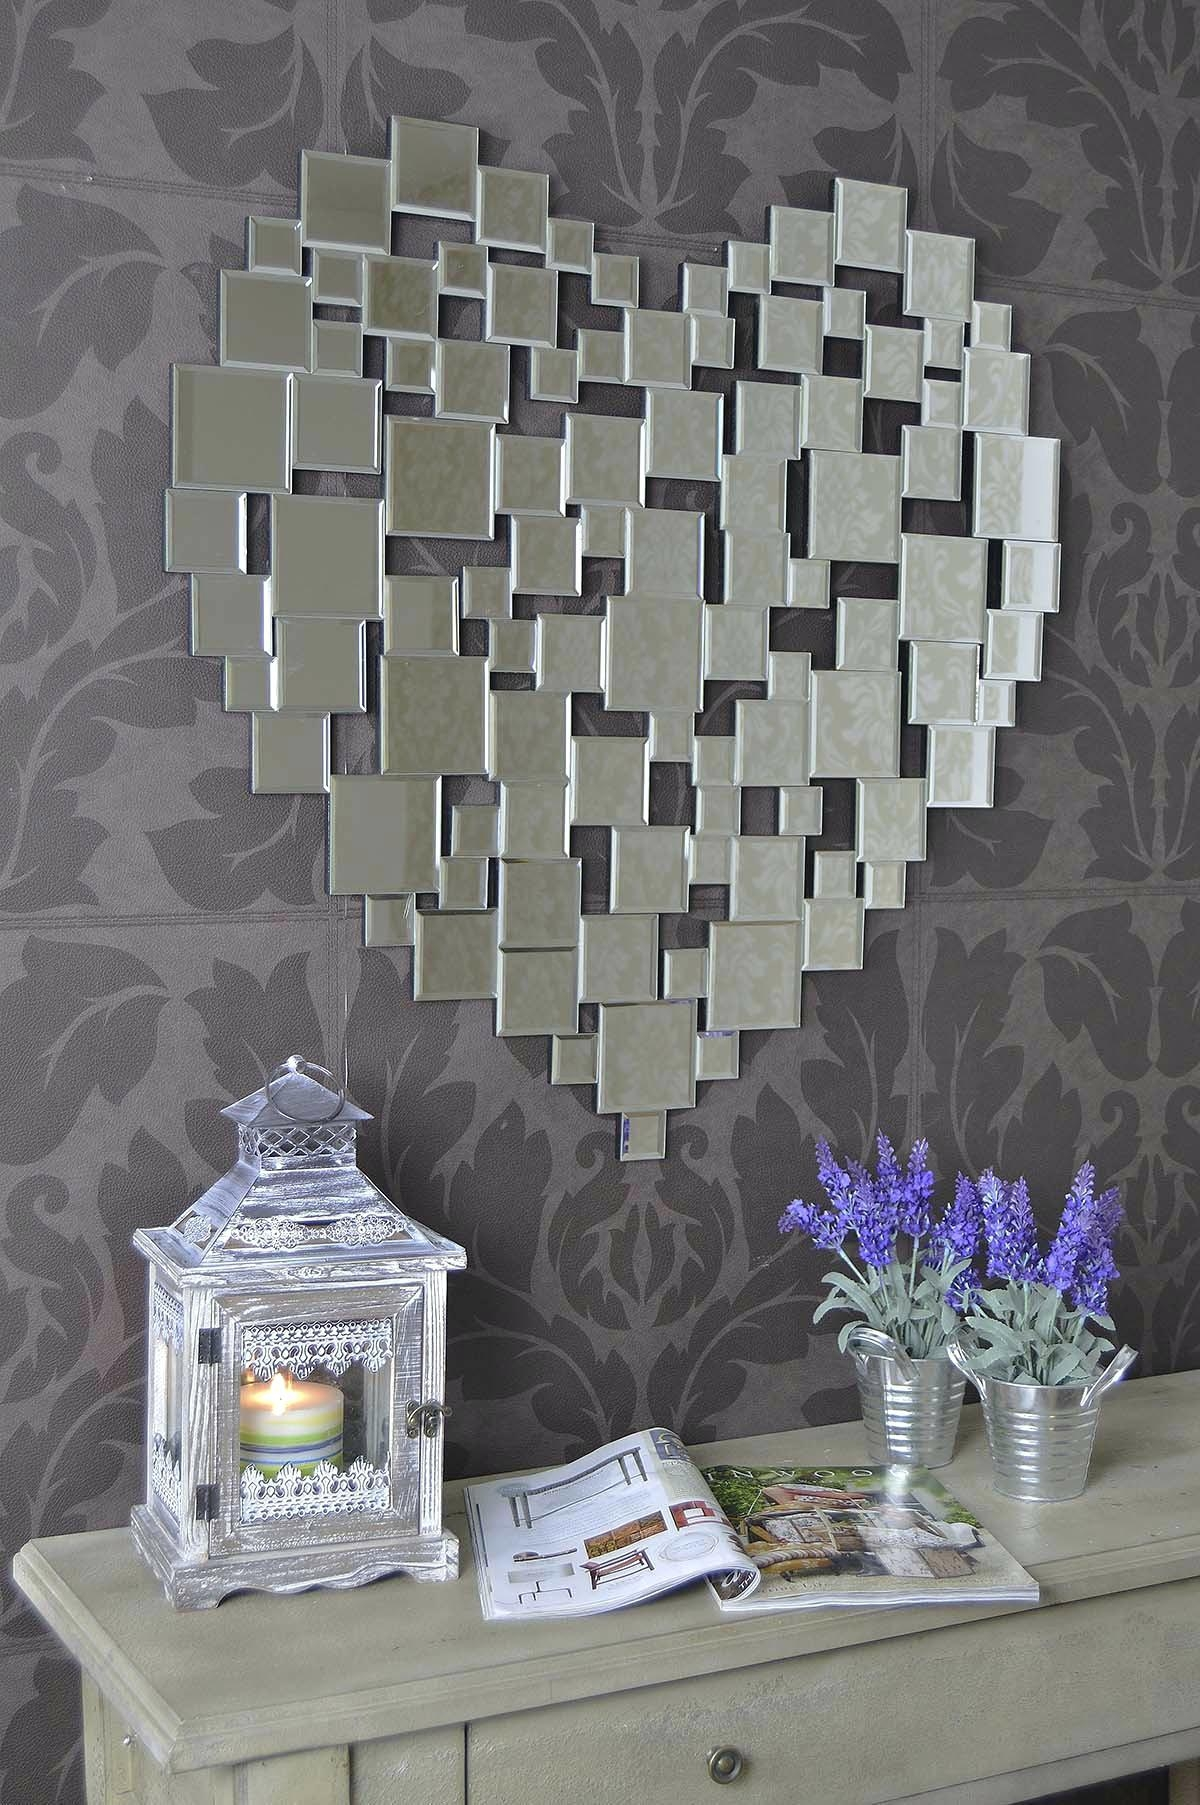 Heart Shape Venetian Wall Mirror 2Ft8 80Cm Lightbox Moreviewlarge For Heart Shaped Mirrors For Walls (Image 5 of 20)